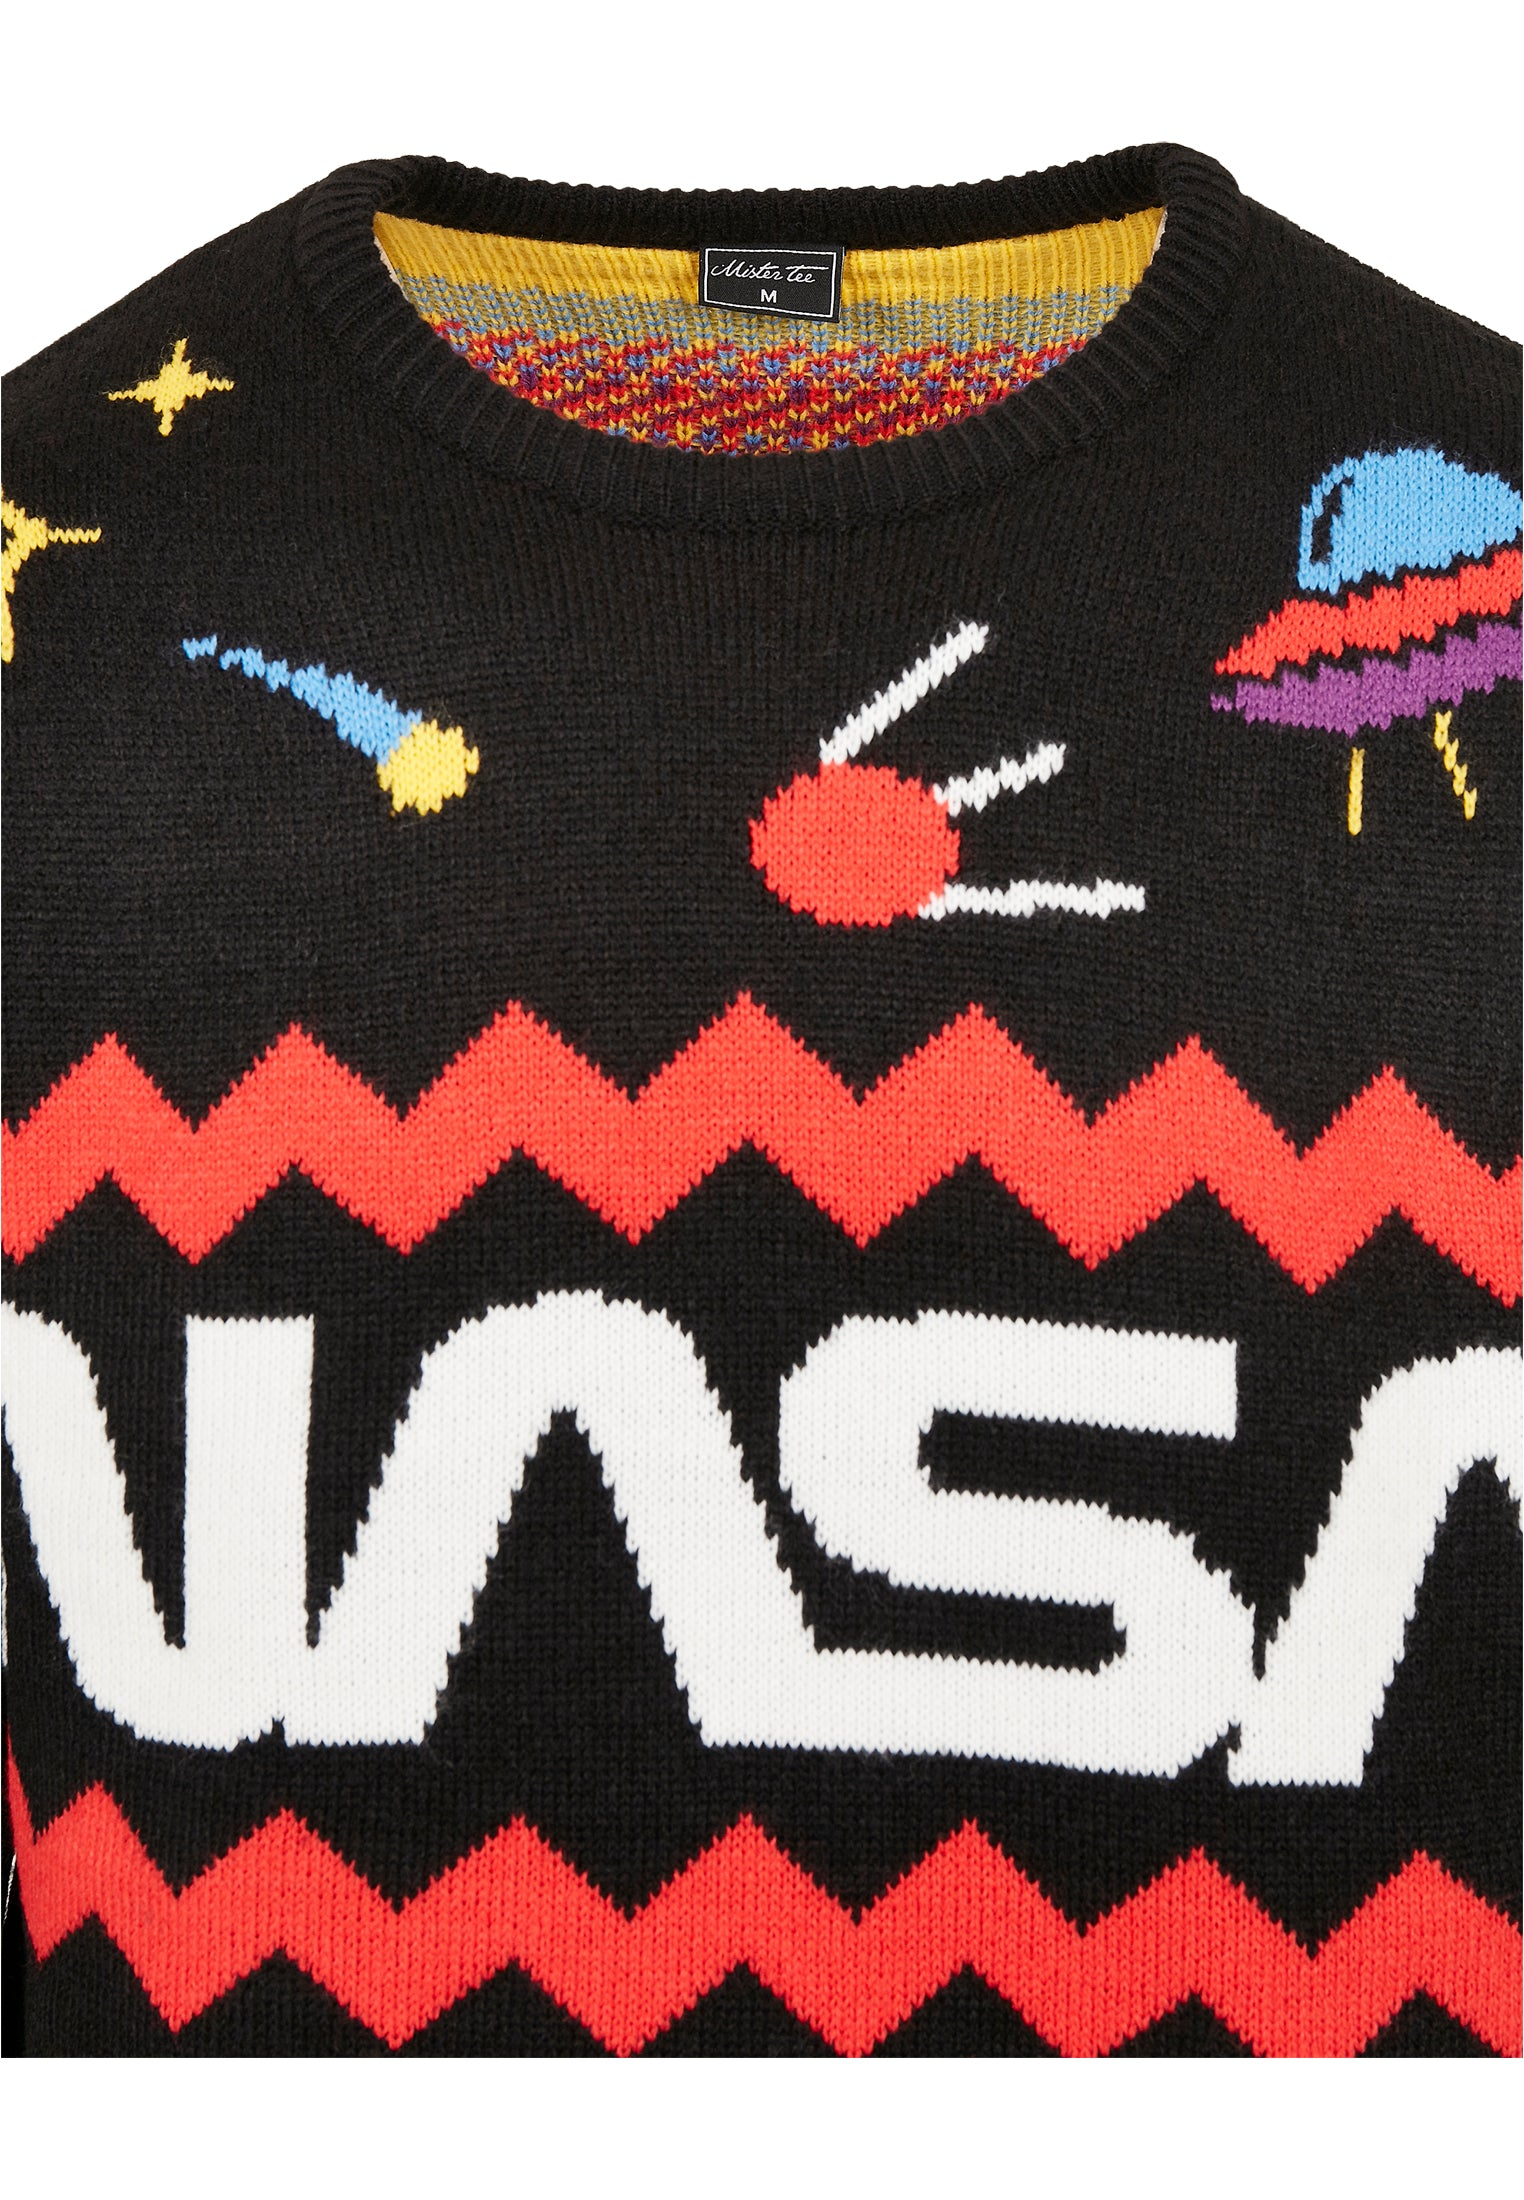 NASA Xmas Sweater